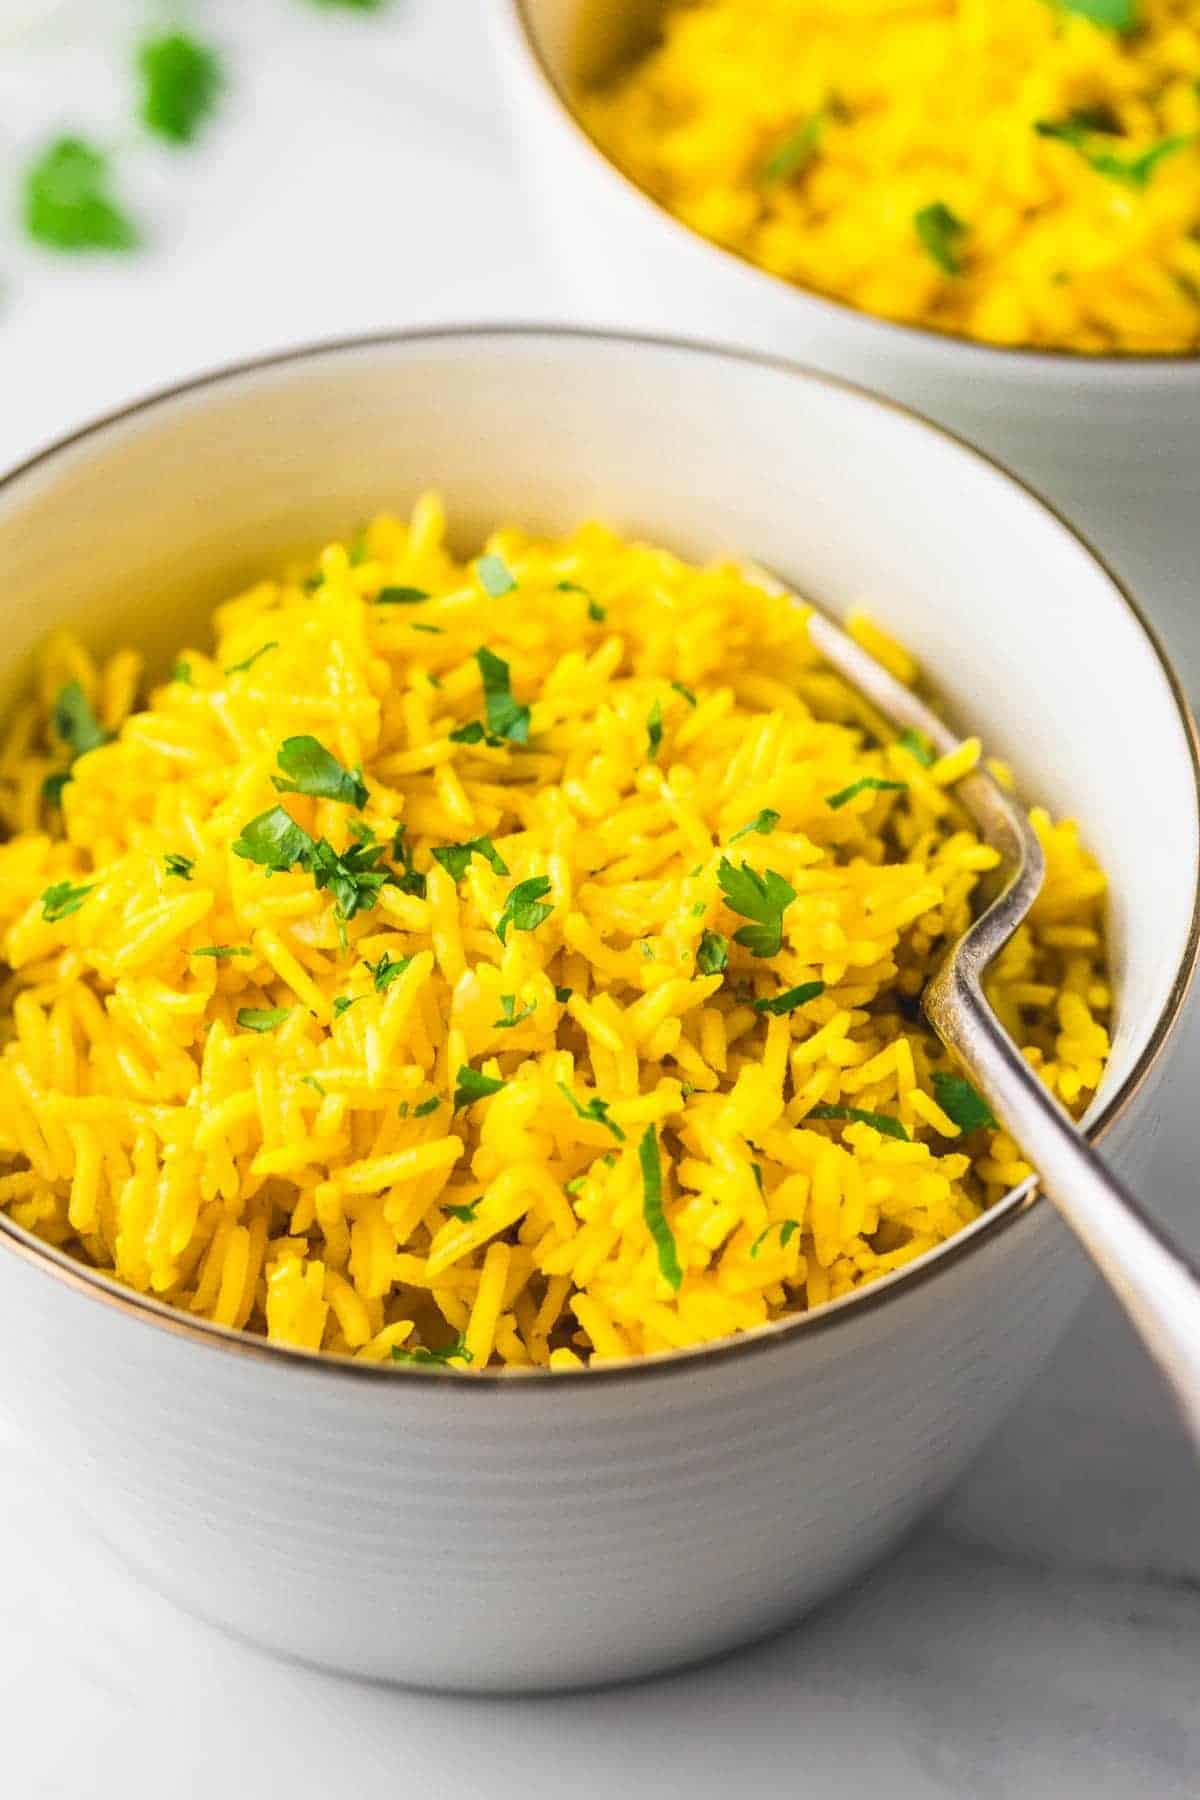 Yellow rice served in a white bowl with a fork on the side